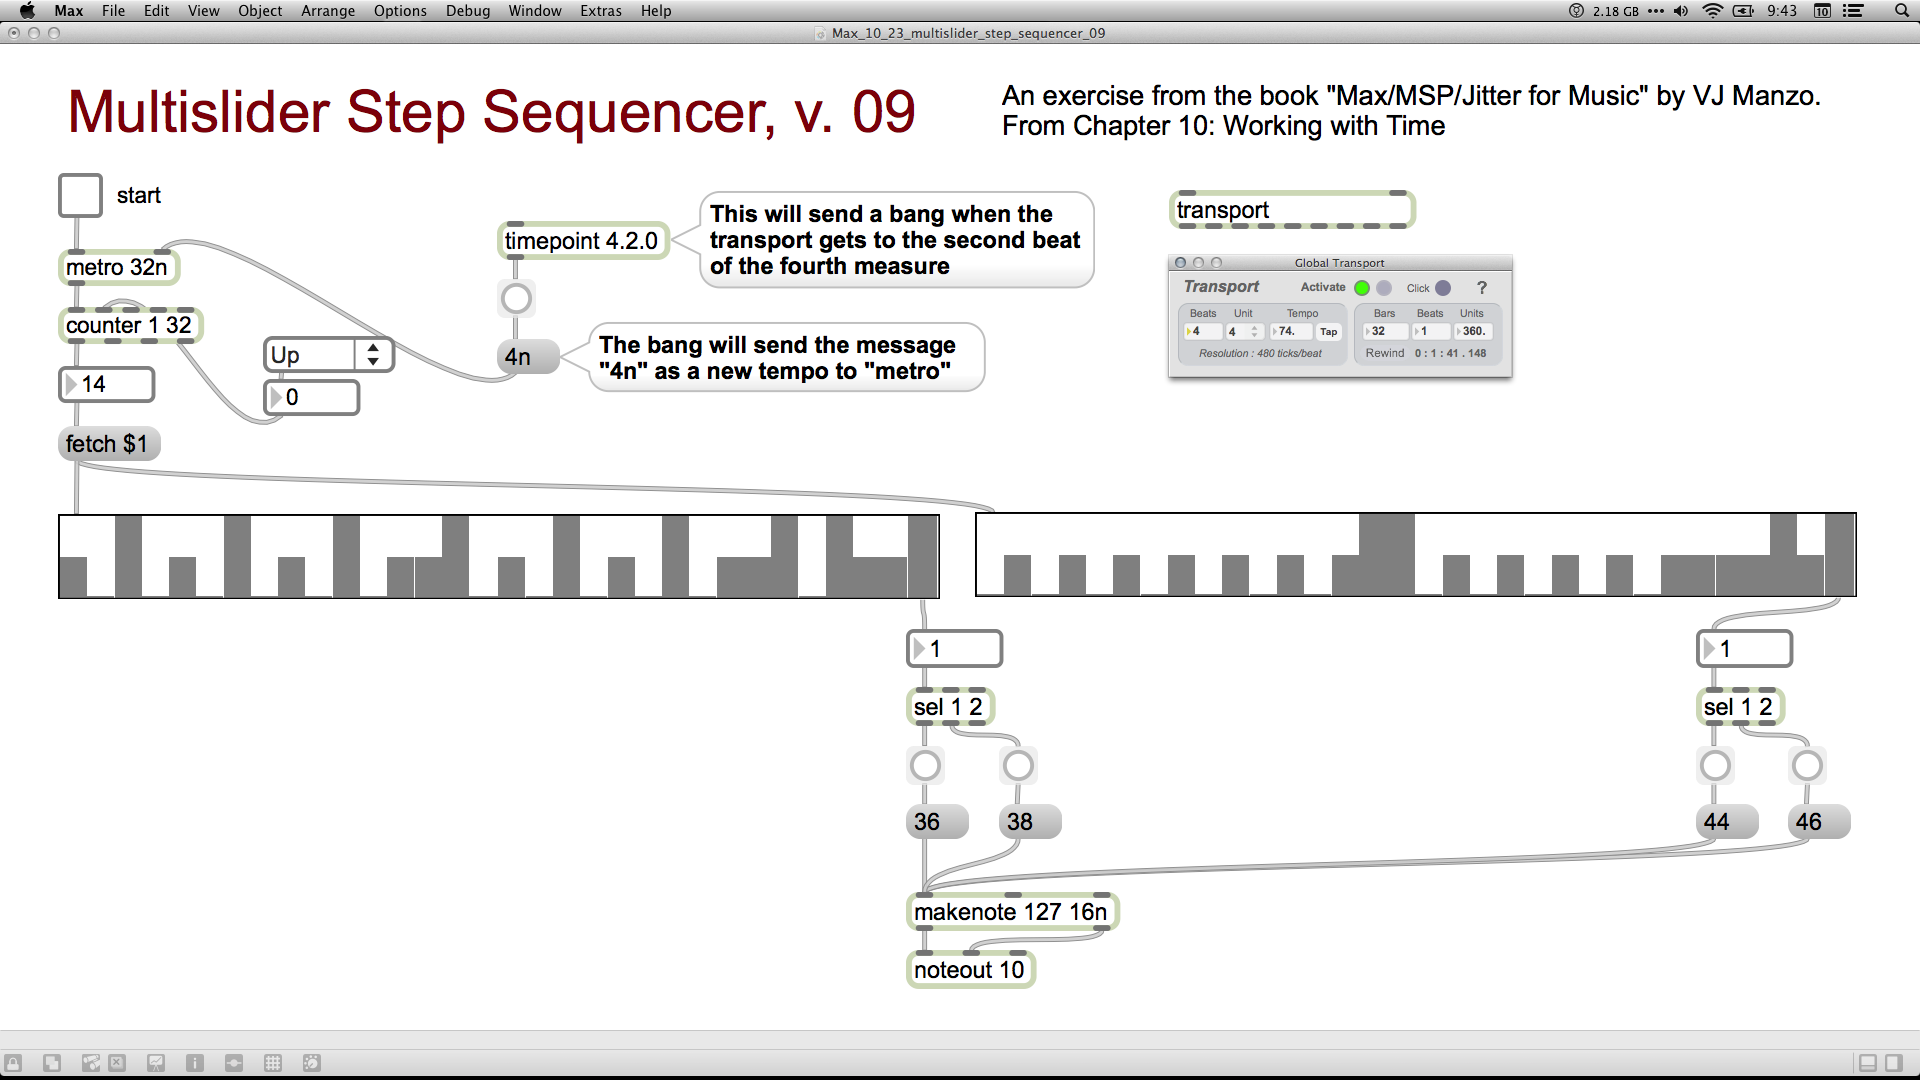 max_10_23_multislider_step_sequencer_09.png